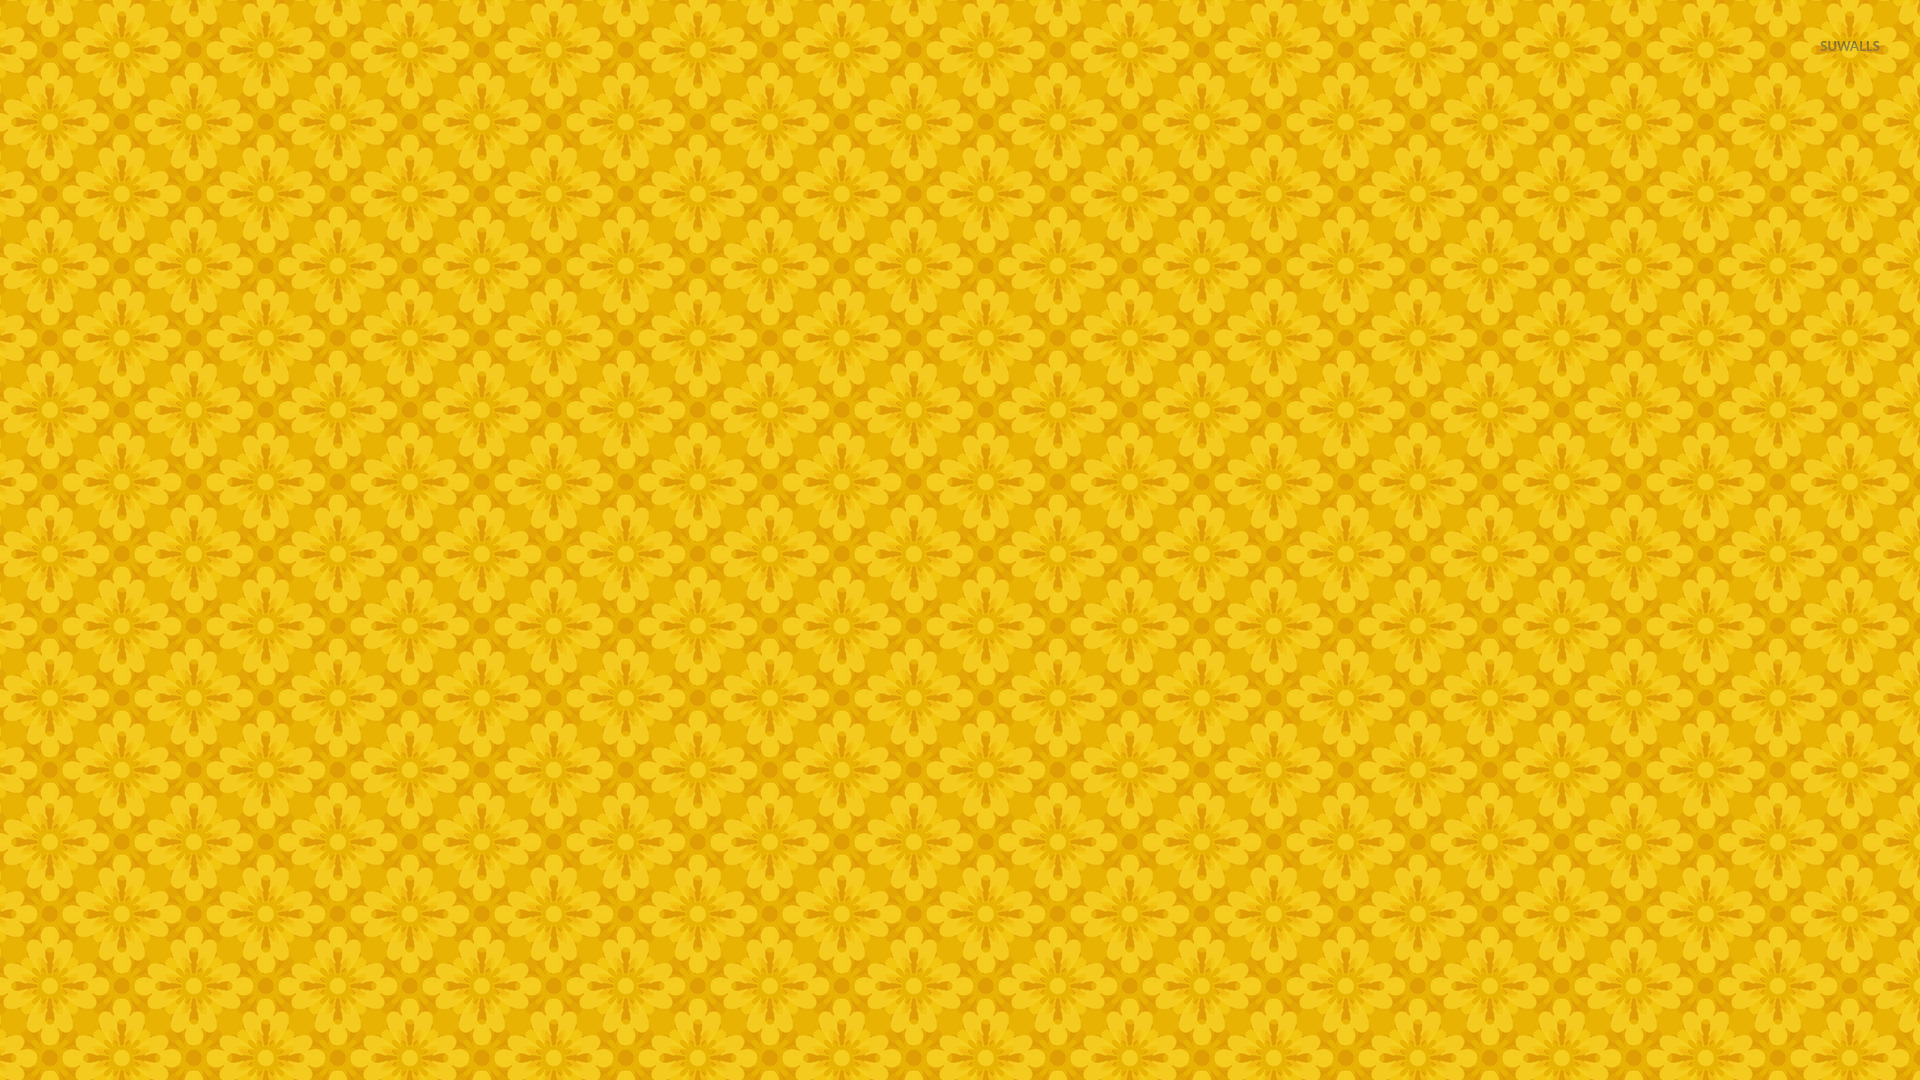 yellow floral pattern - photo #33